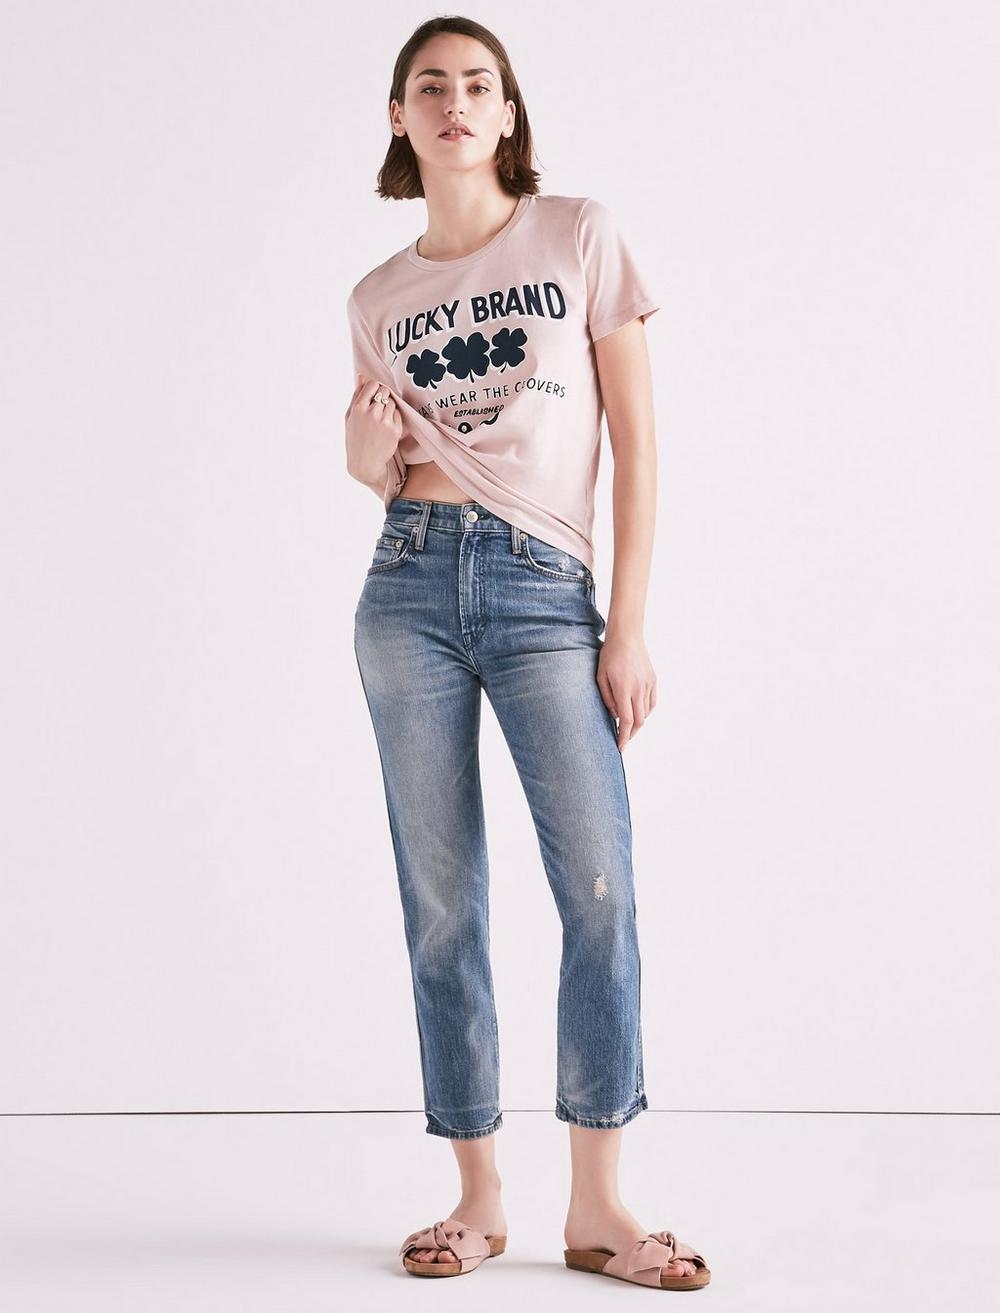 MADE IN L.A. LUCKY PINS HIGH RISE JEAN IN WILKINS, image 2